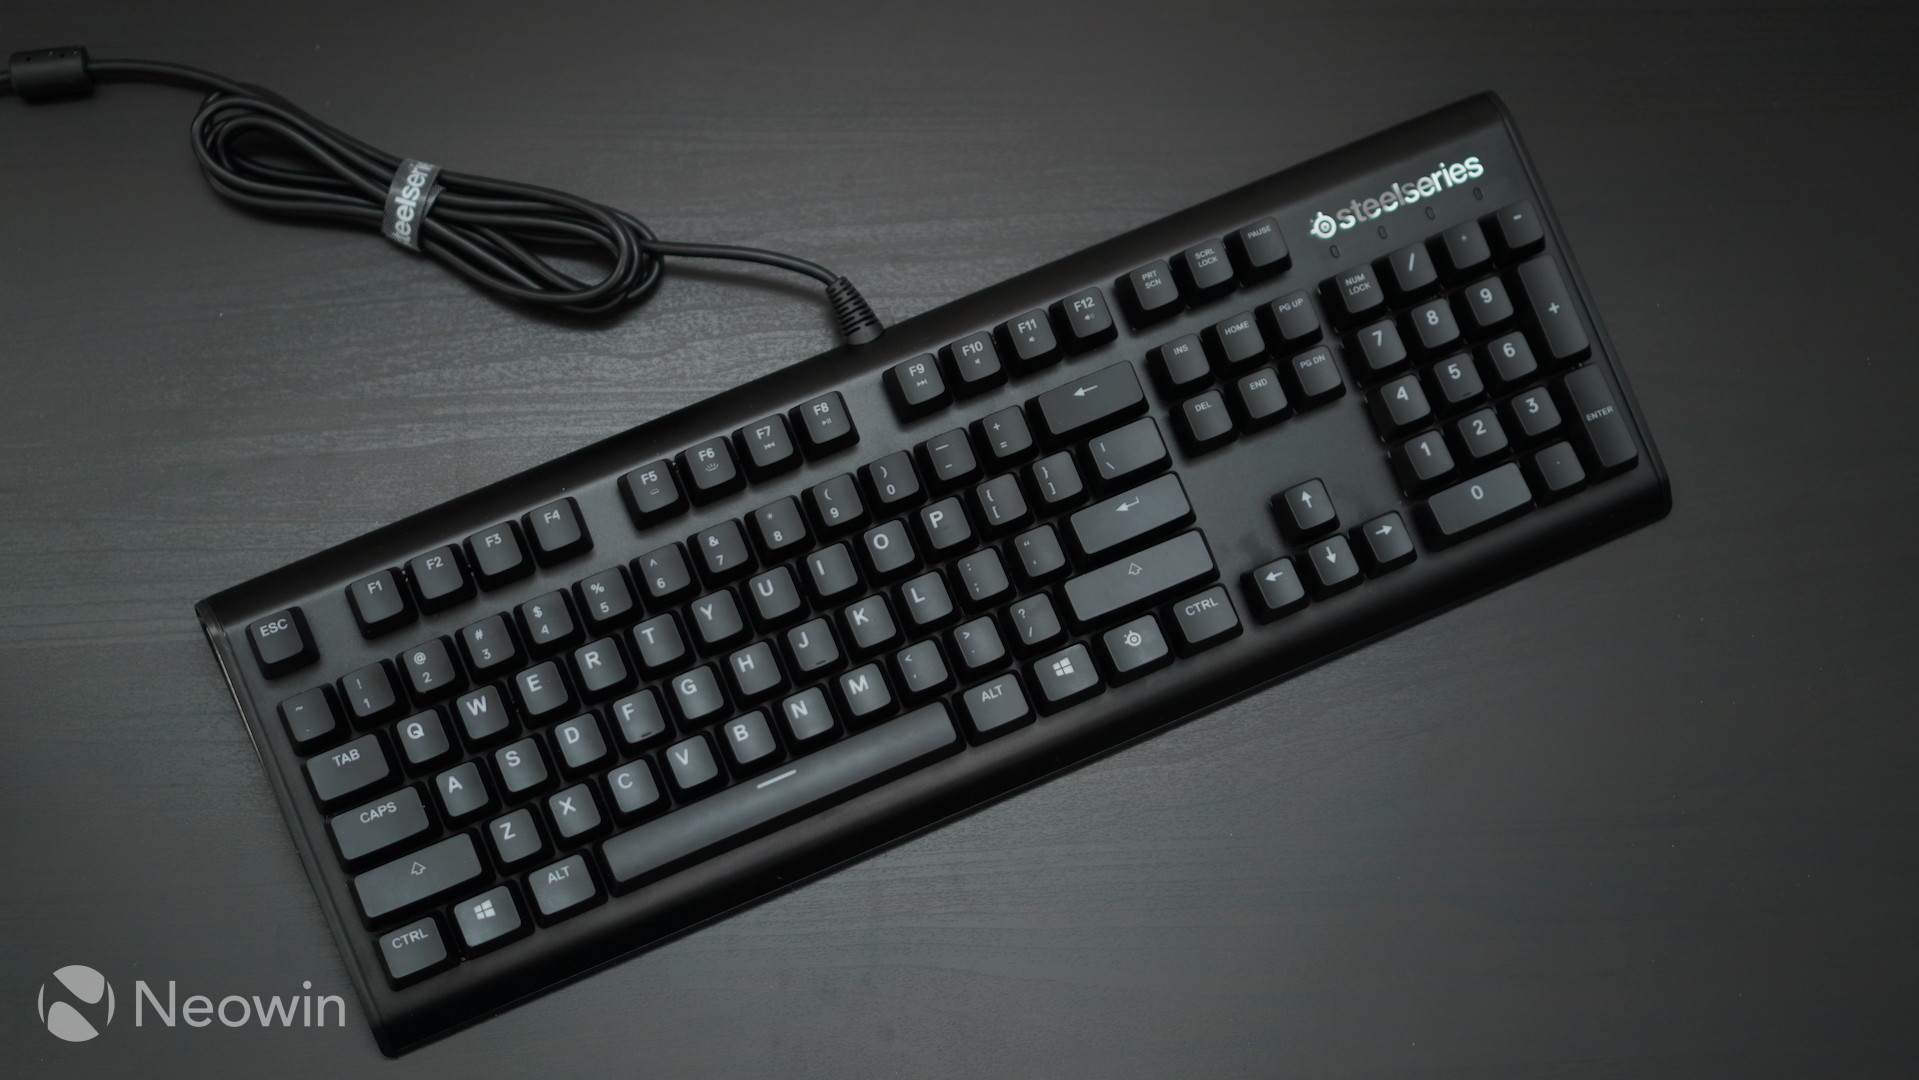 SteelSeries Apex M750 keyboard review: Power and poise - Neowin